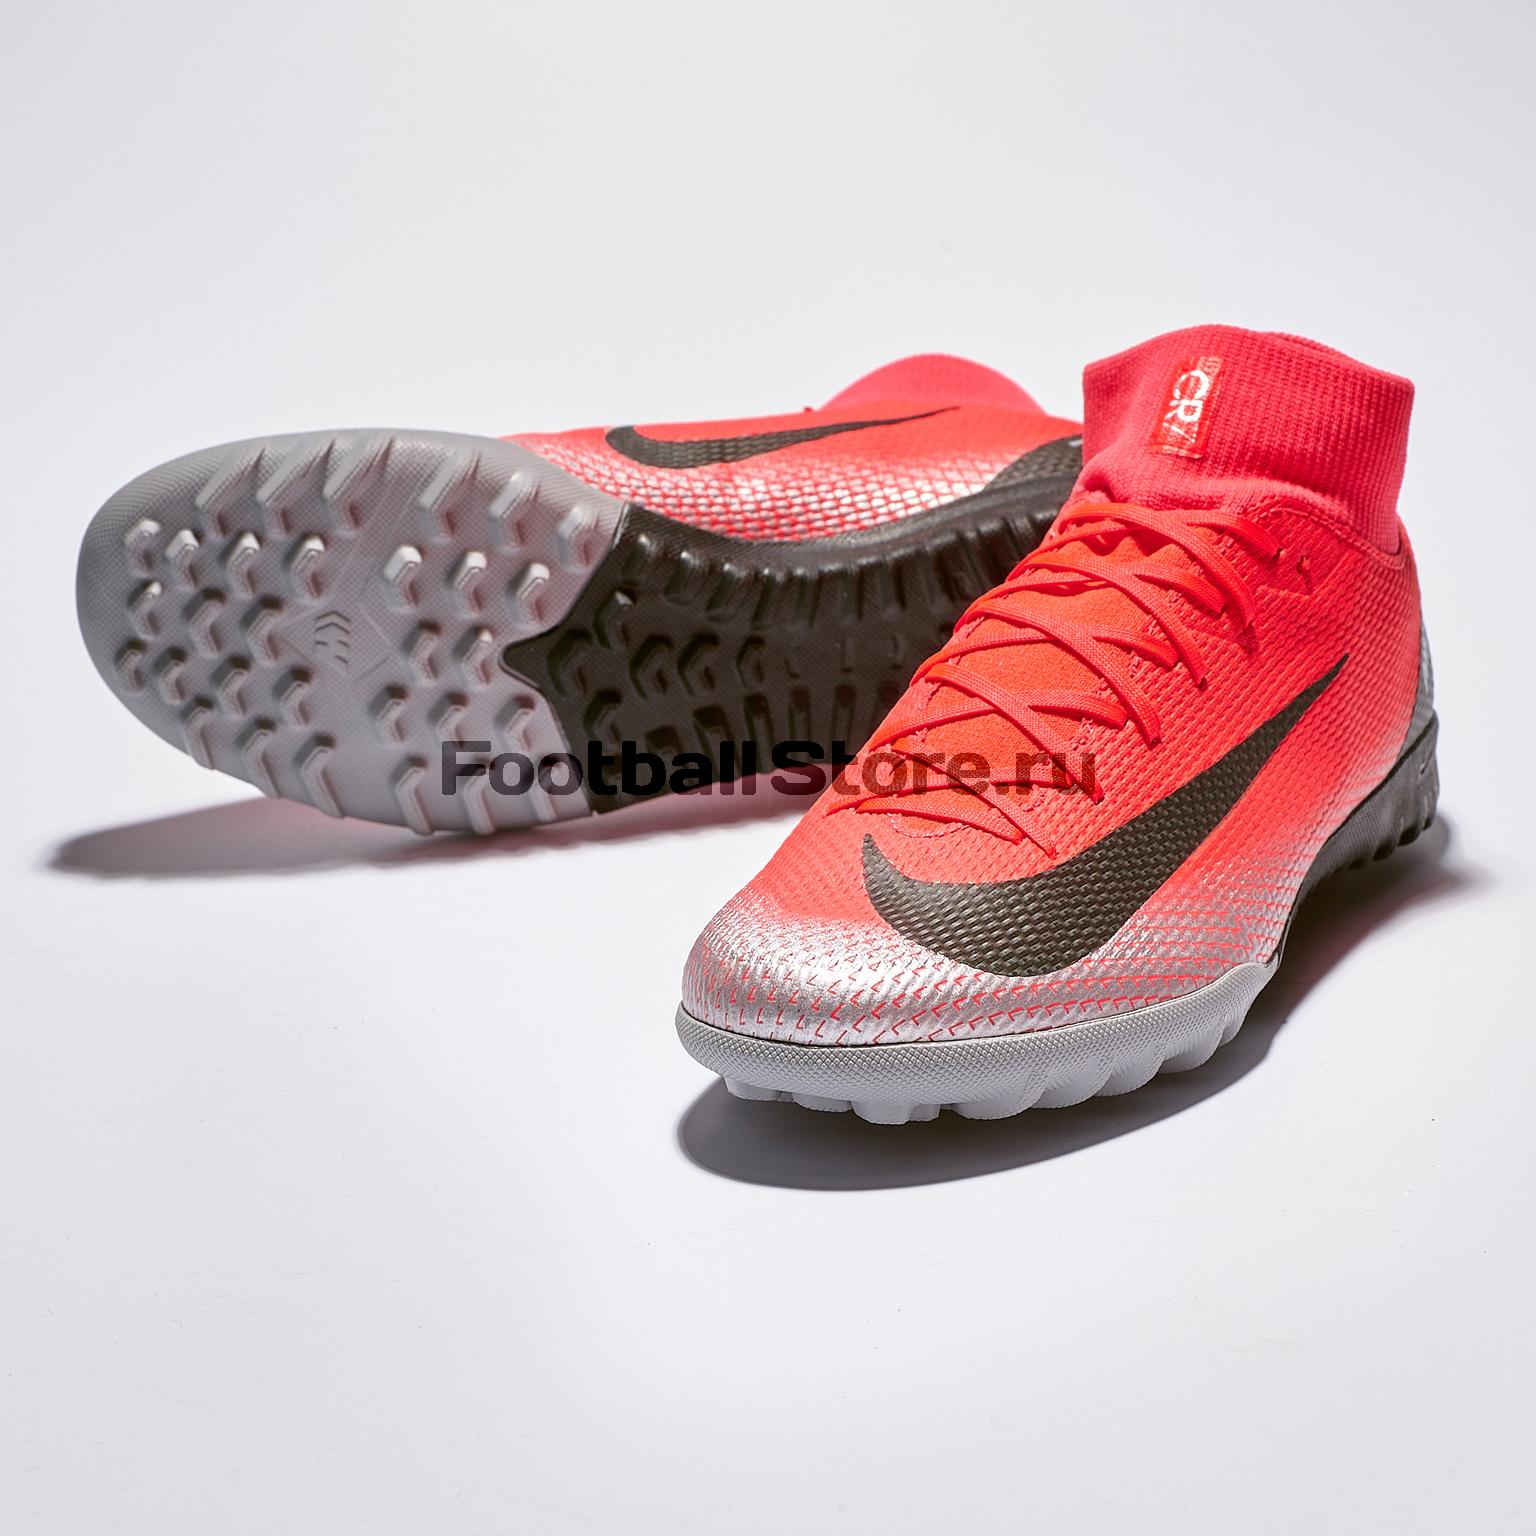 Шиповки Nike Superfly 6 Academy CR7 TF AJ3568-600 бутсы nike superfly 6 elite sg pro ac ah7366 060